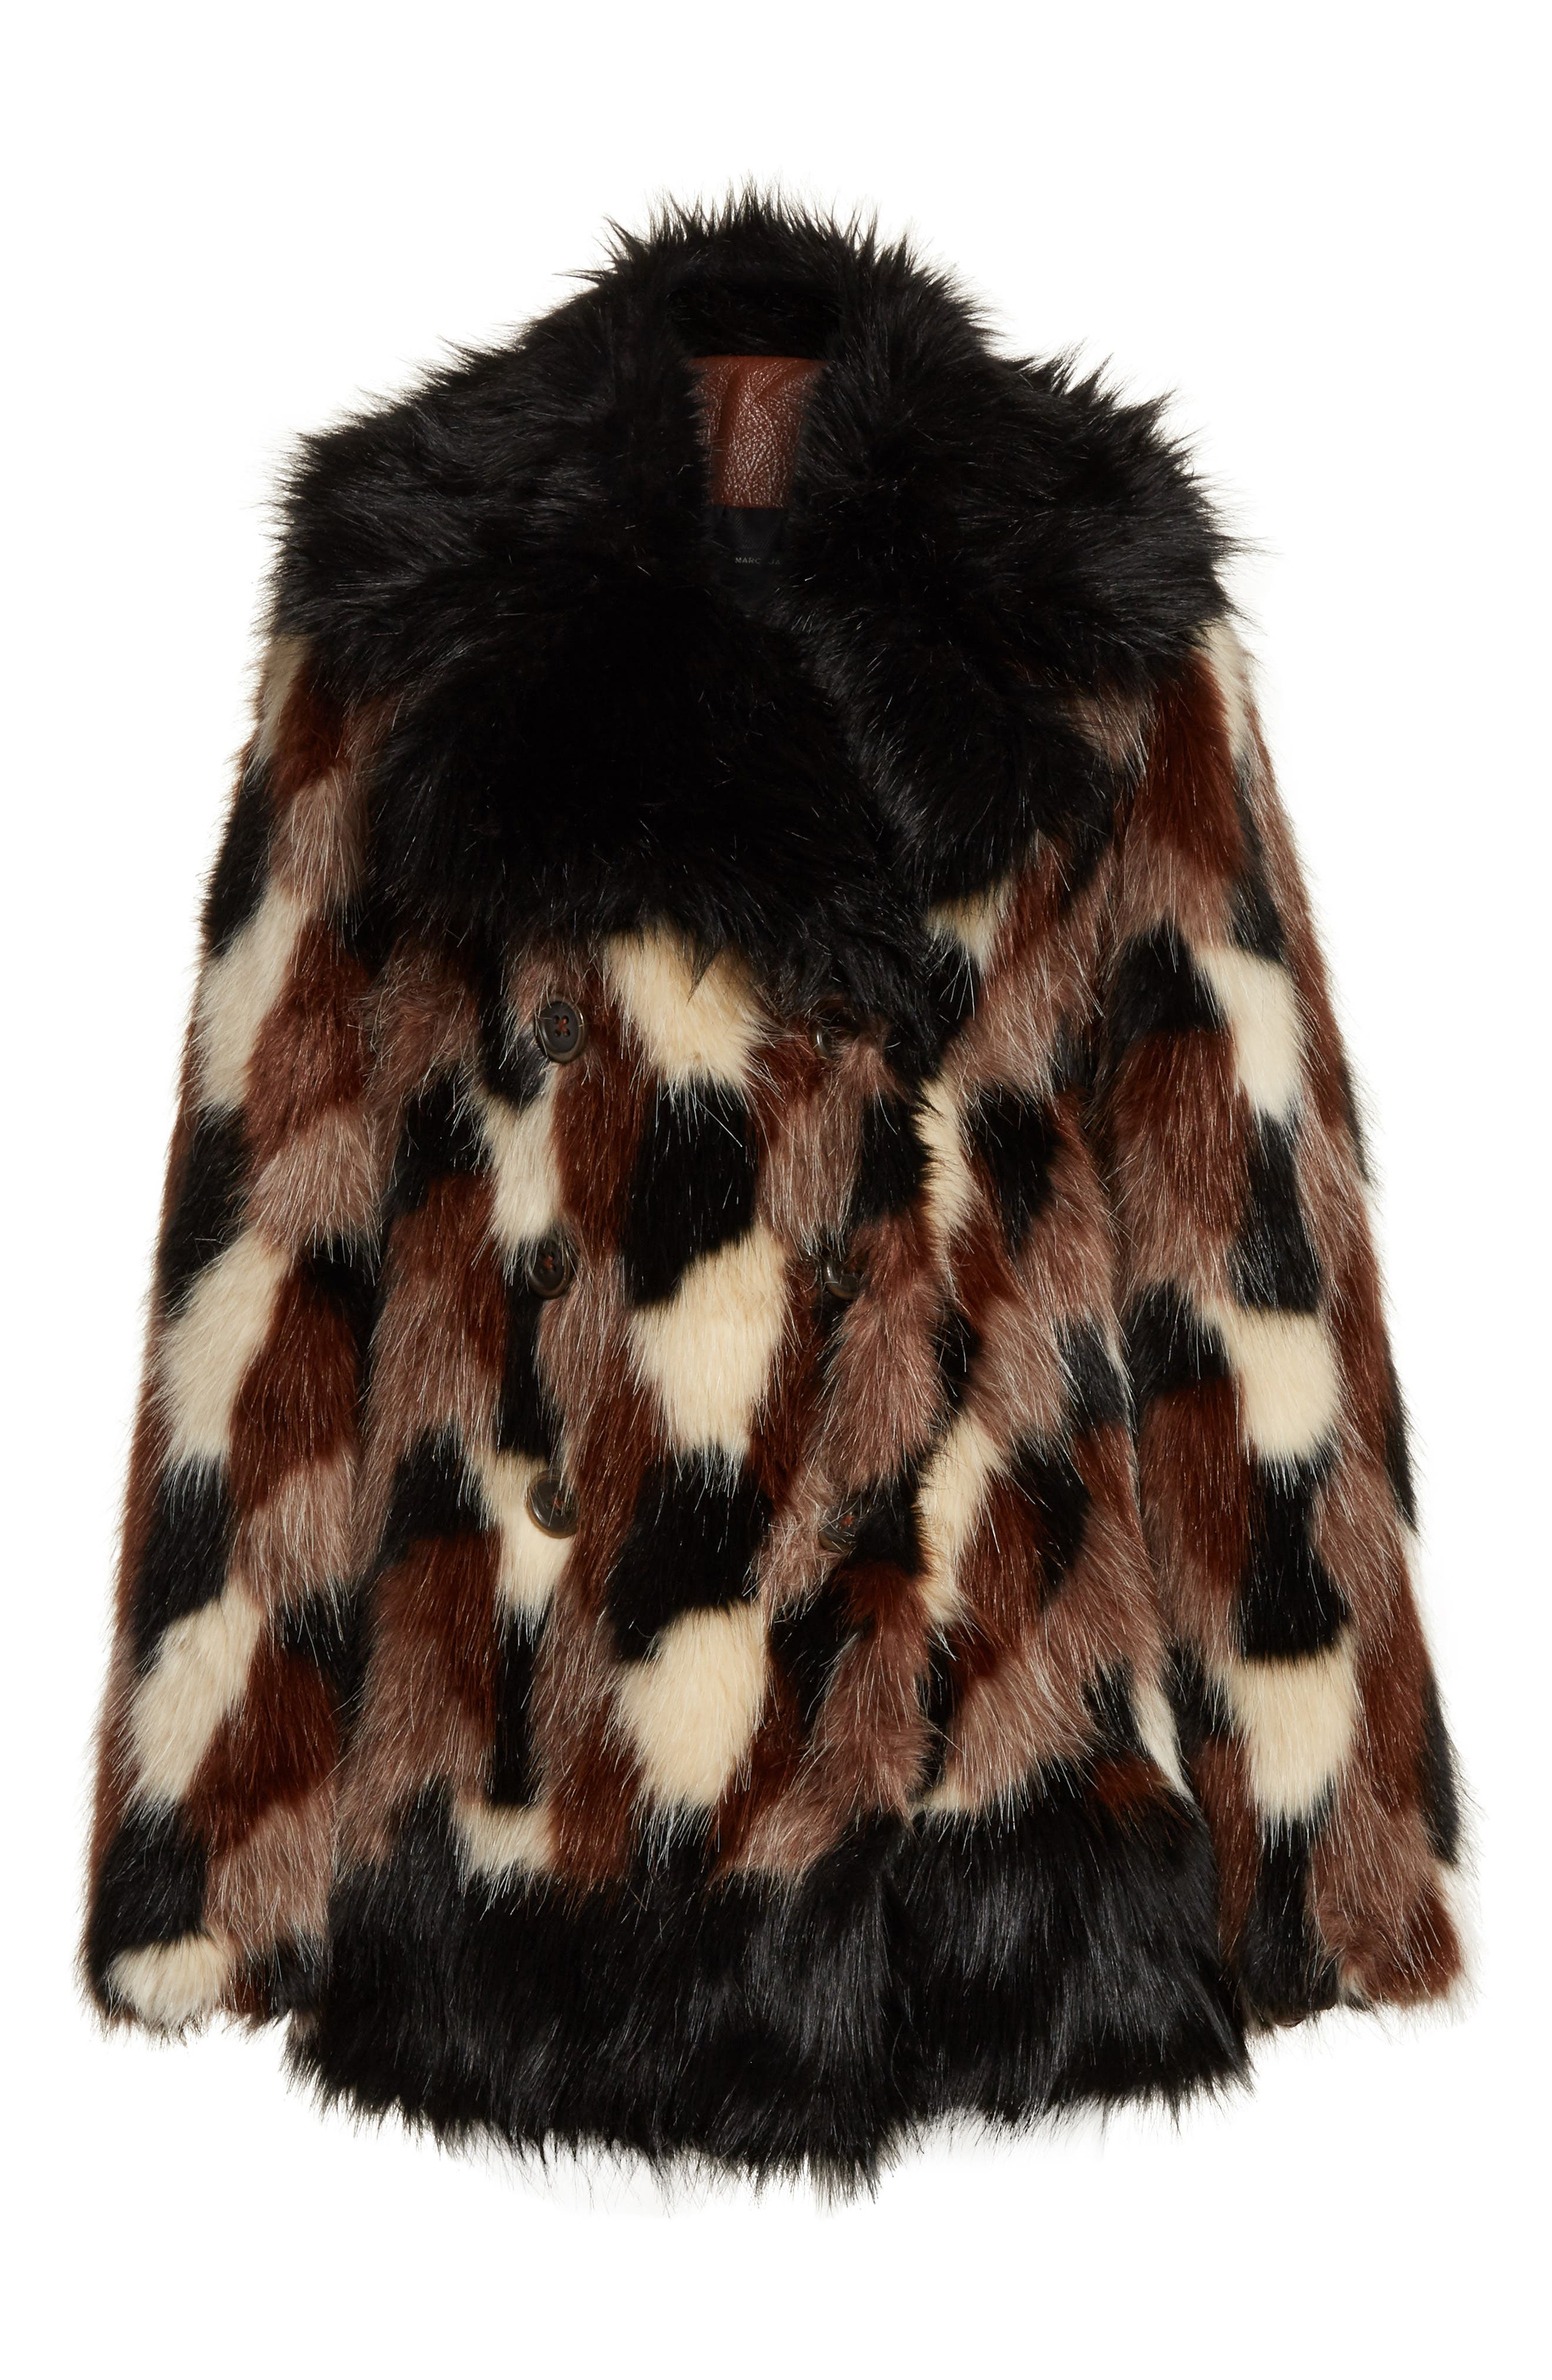 Patchwork Faux Fur Jacket,                             Alternate thumbnail 4, color,                             Black Multi